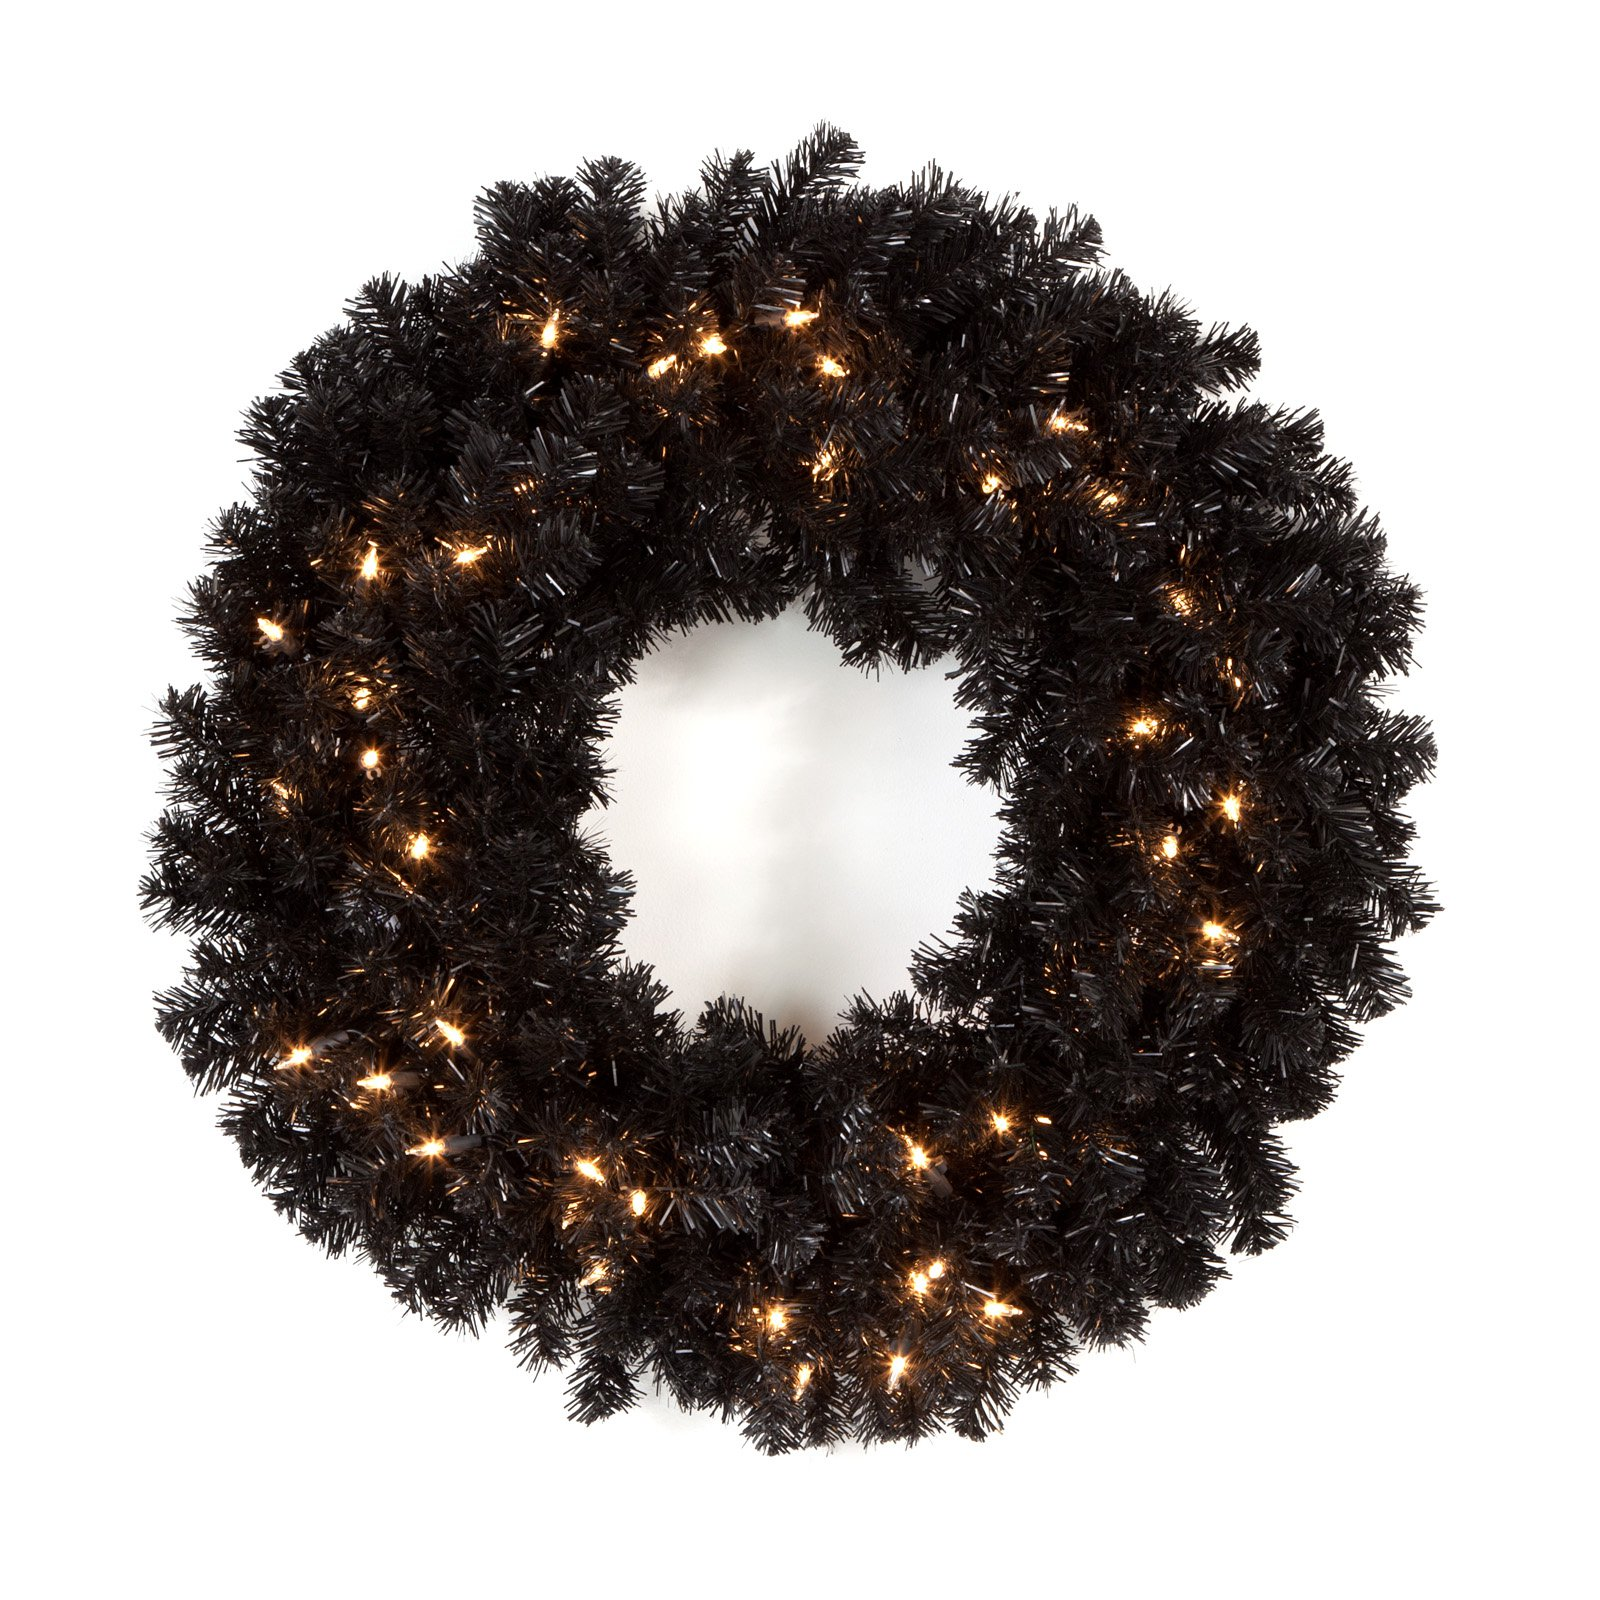 24 in. Classic Black Pre-lit Wreath